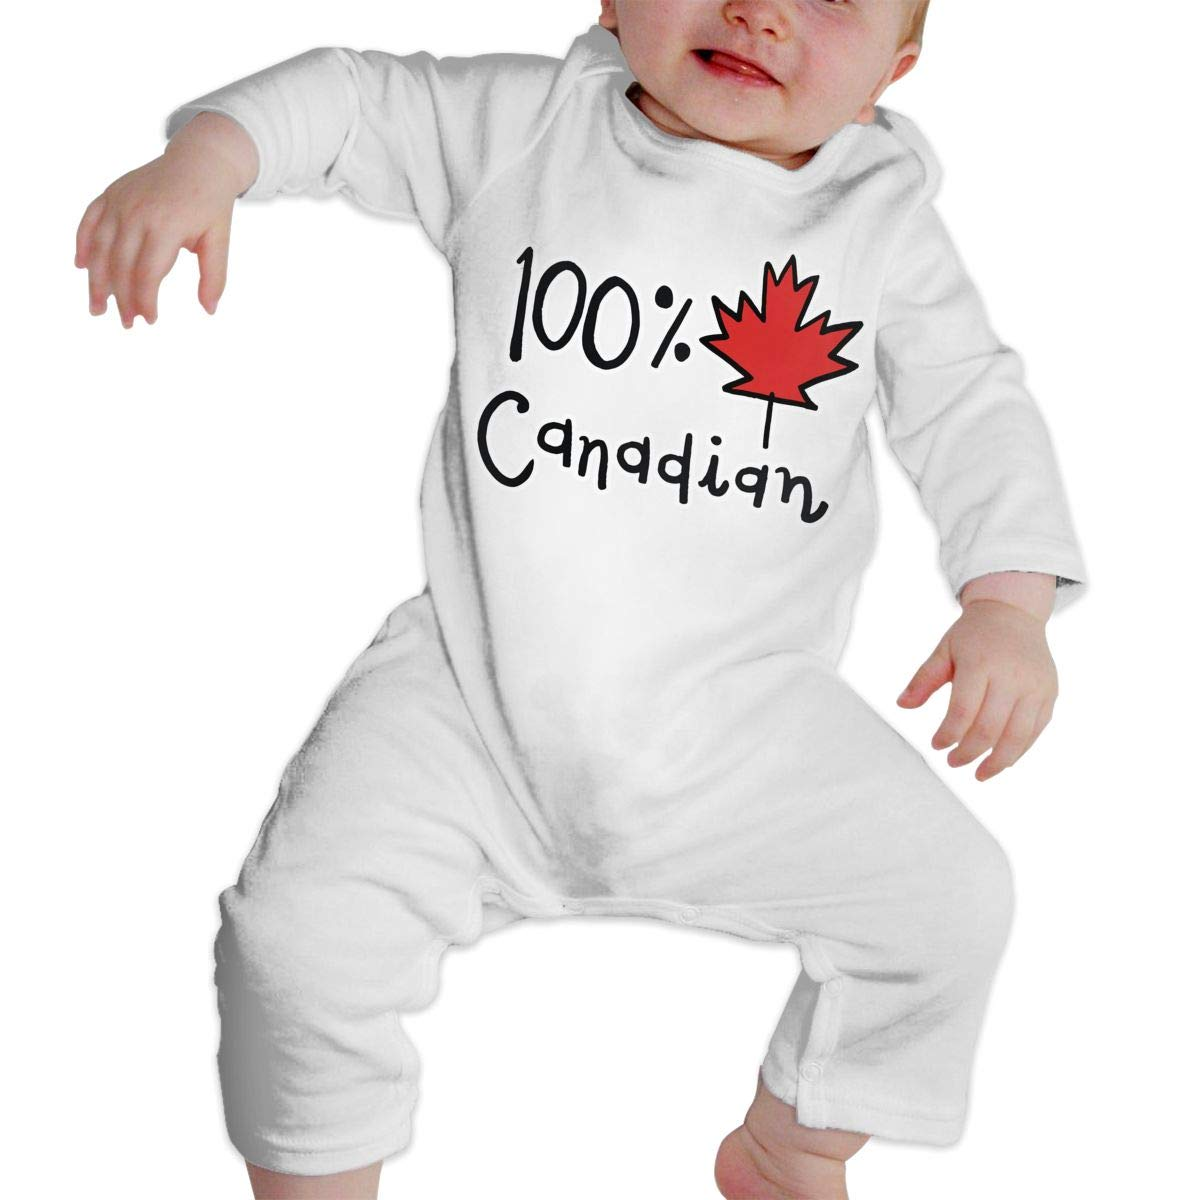 A1BY-5US Infant Baby Girls Cotton Long Sleeve 100/% Canadian Baby Clothes Funny Printed Romper Clothes